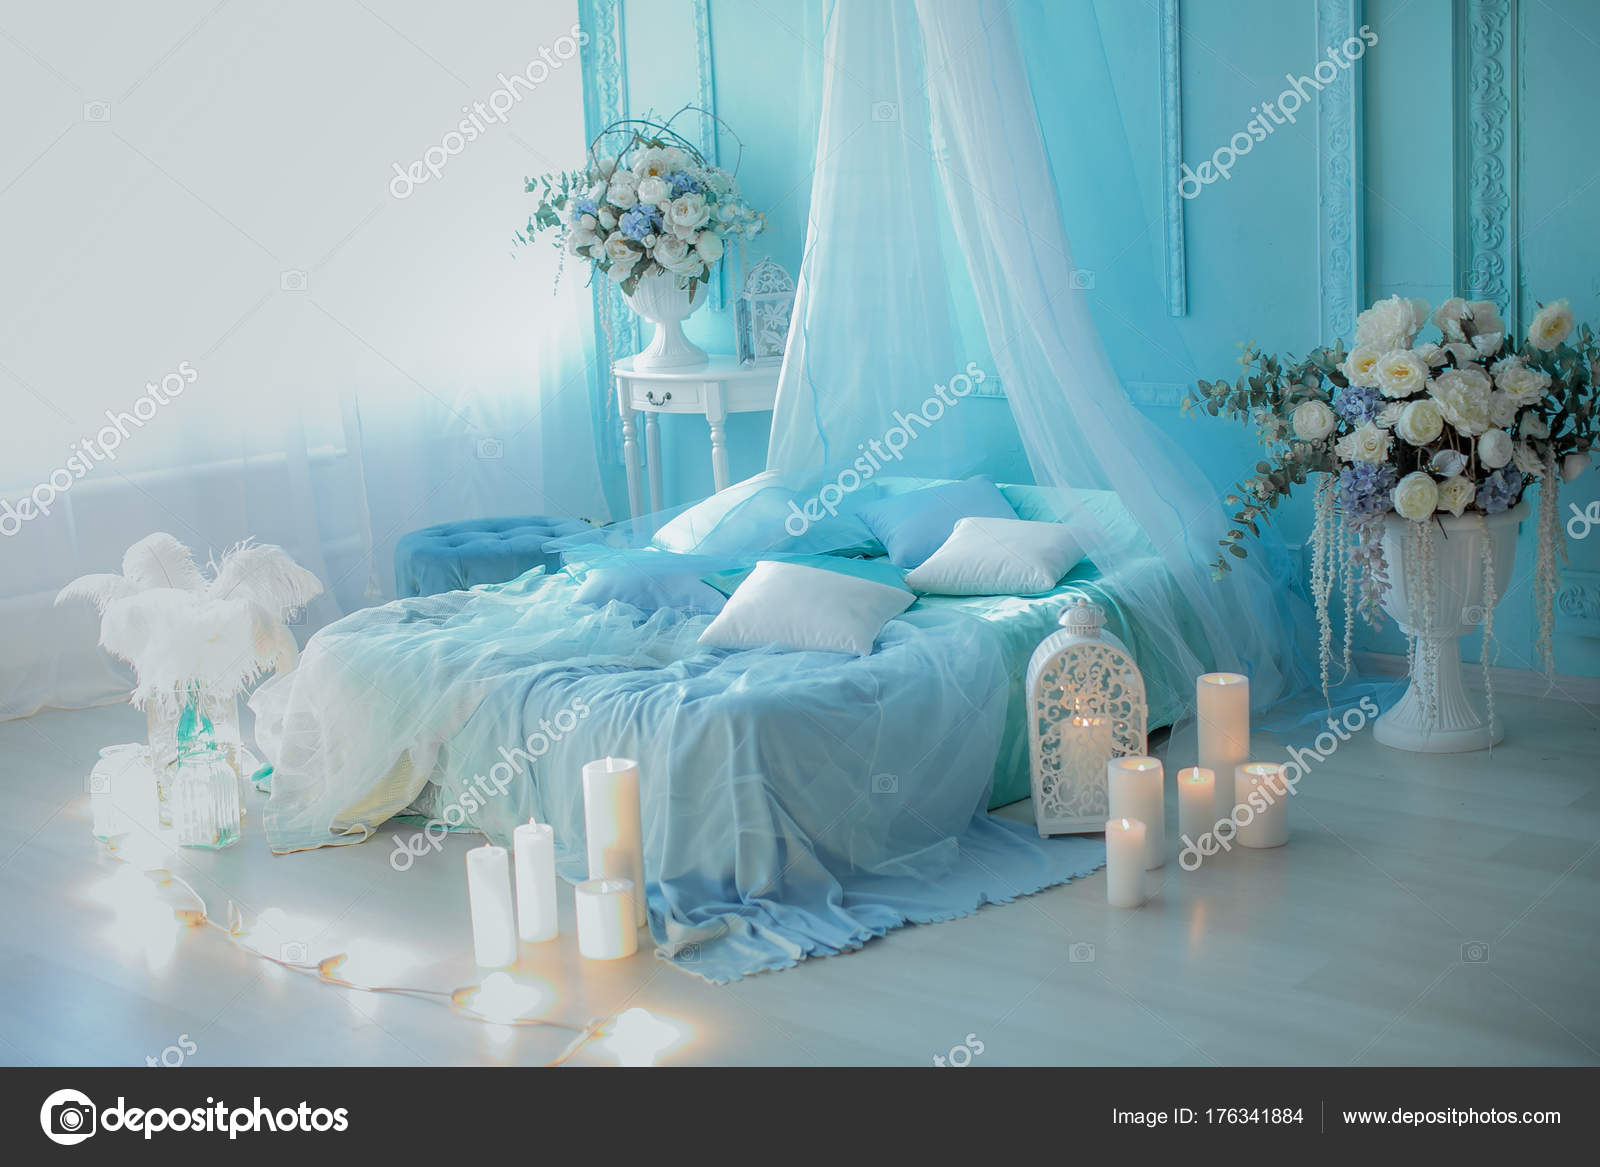 Bedroom Interior Flowers Decorative Candles Stock Photo C Batkovaelena 176341884